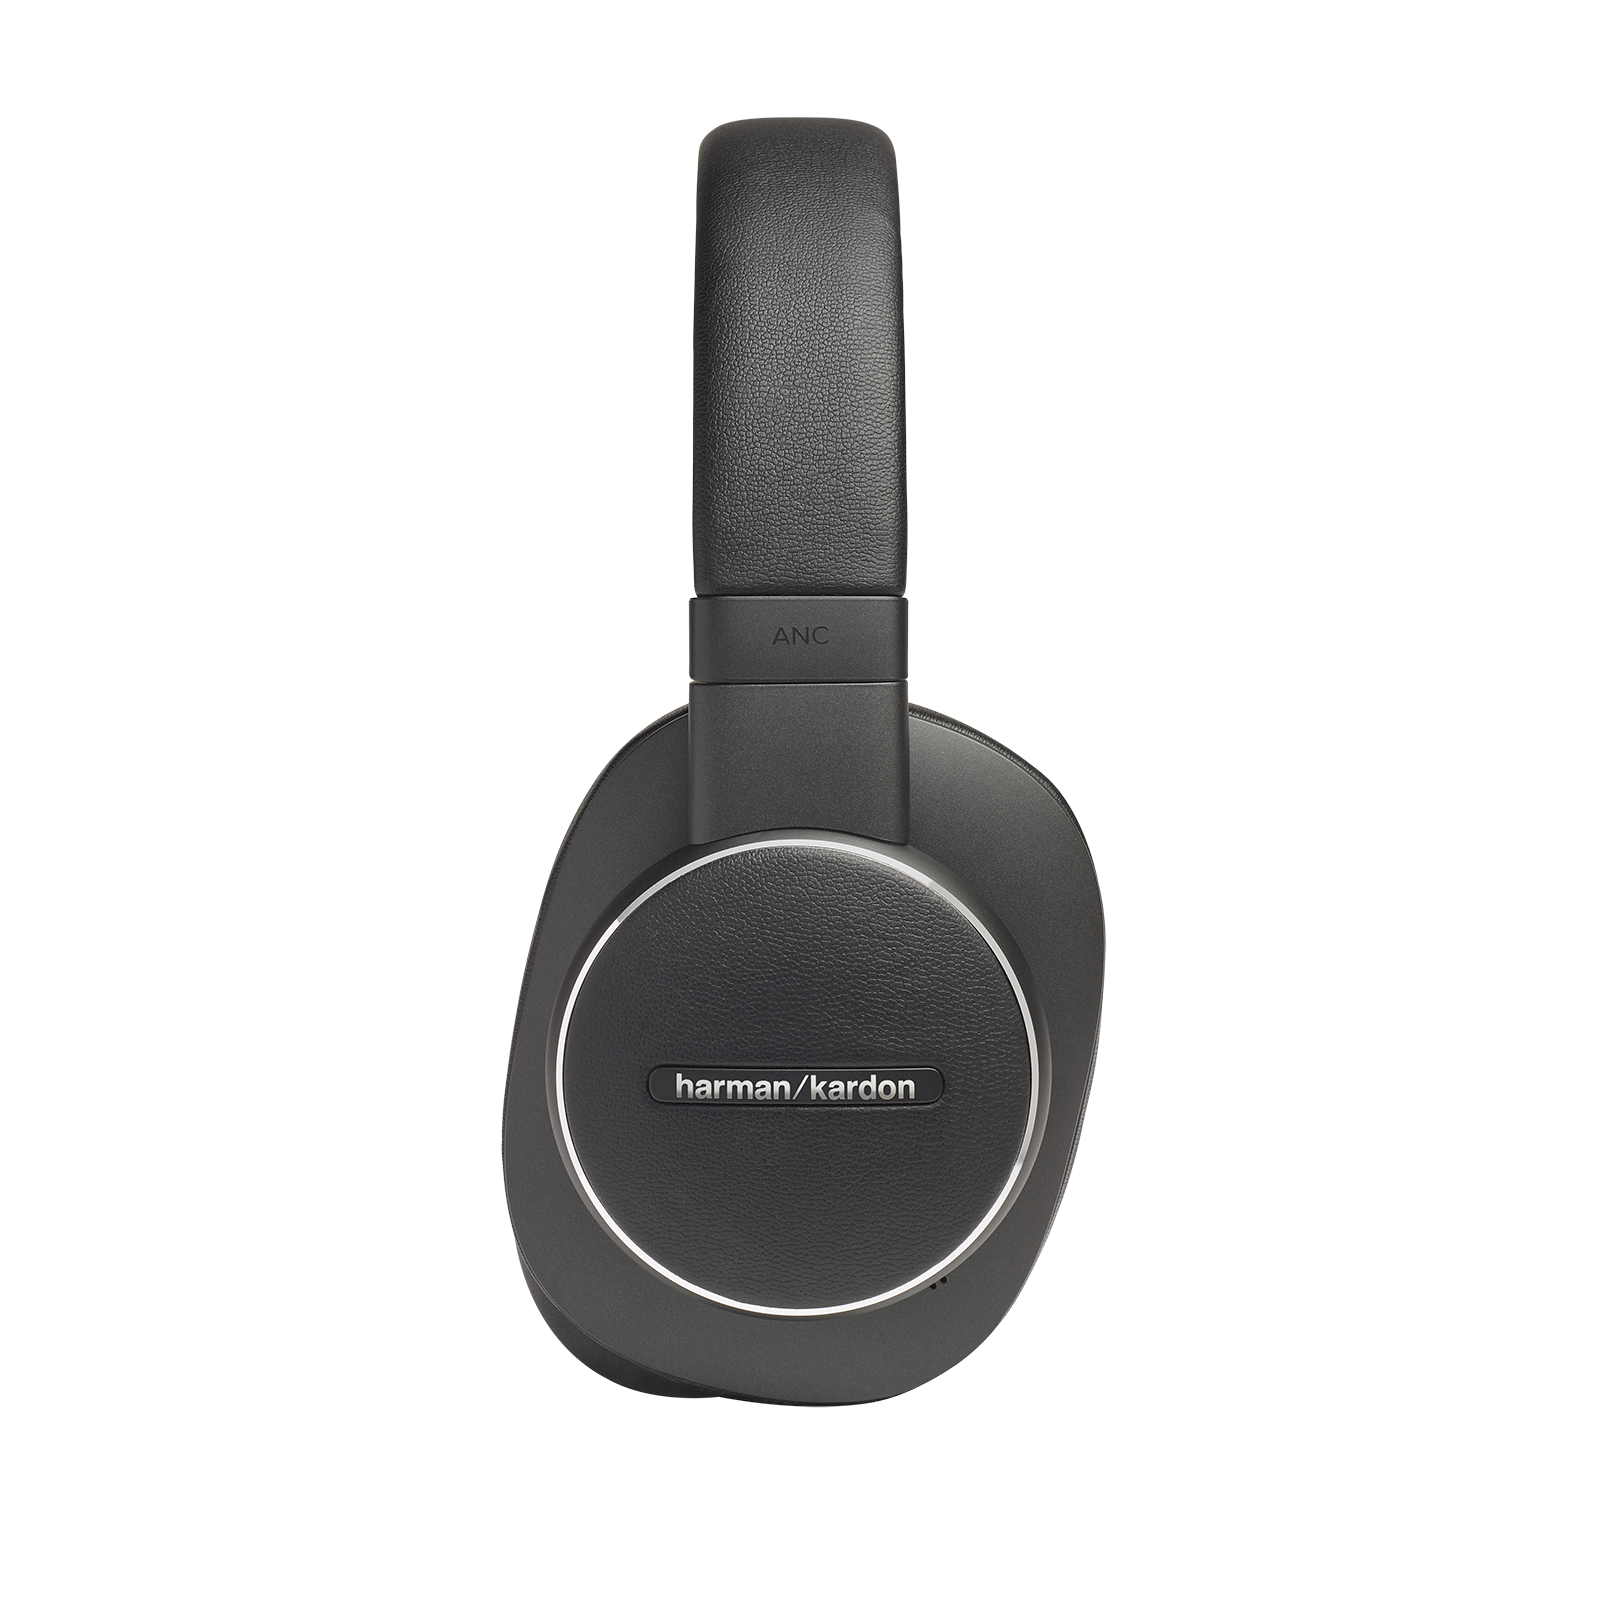 Harman Kardon FLY ANC - Black - Wireless Over-Ear NC Headphones - Detailshot 6